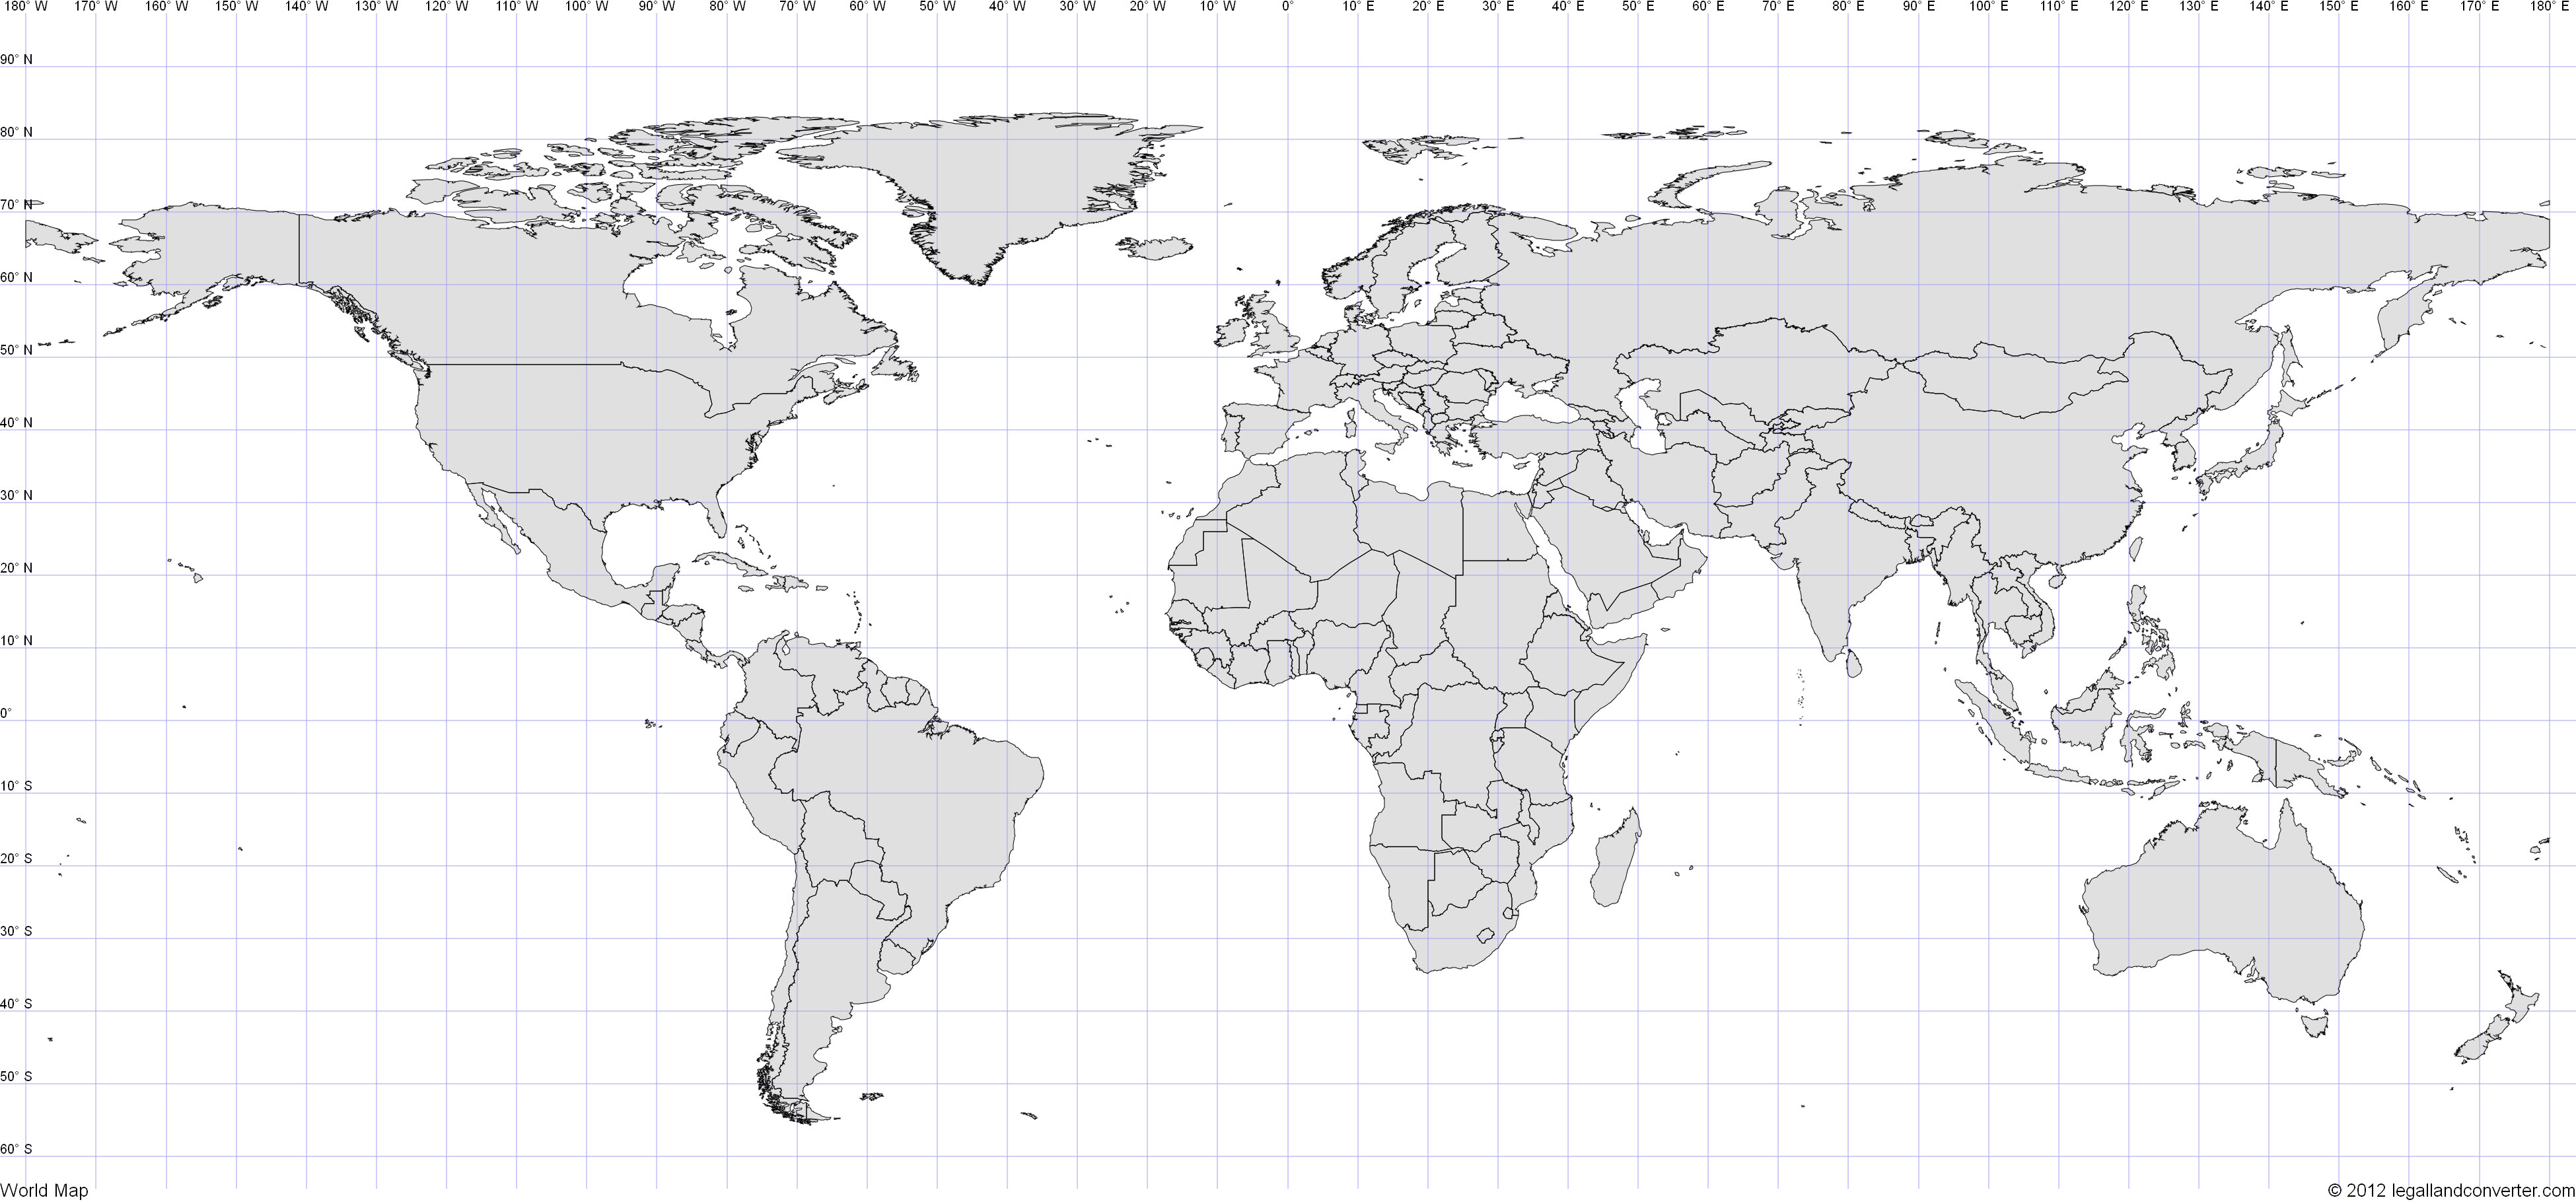 World Map With Latitude And Longitude Grid | Campus Map